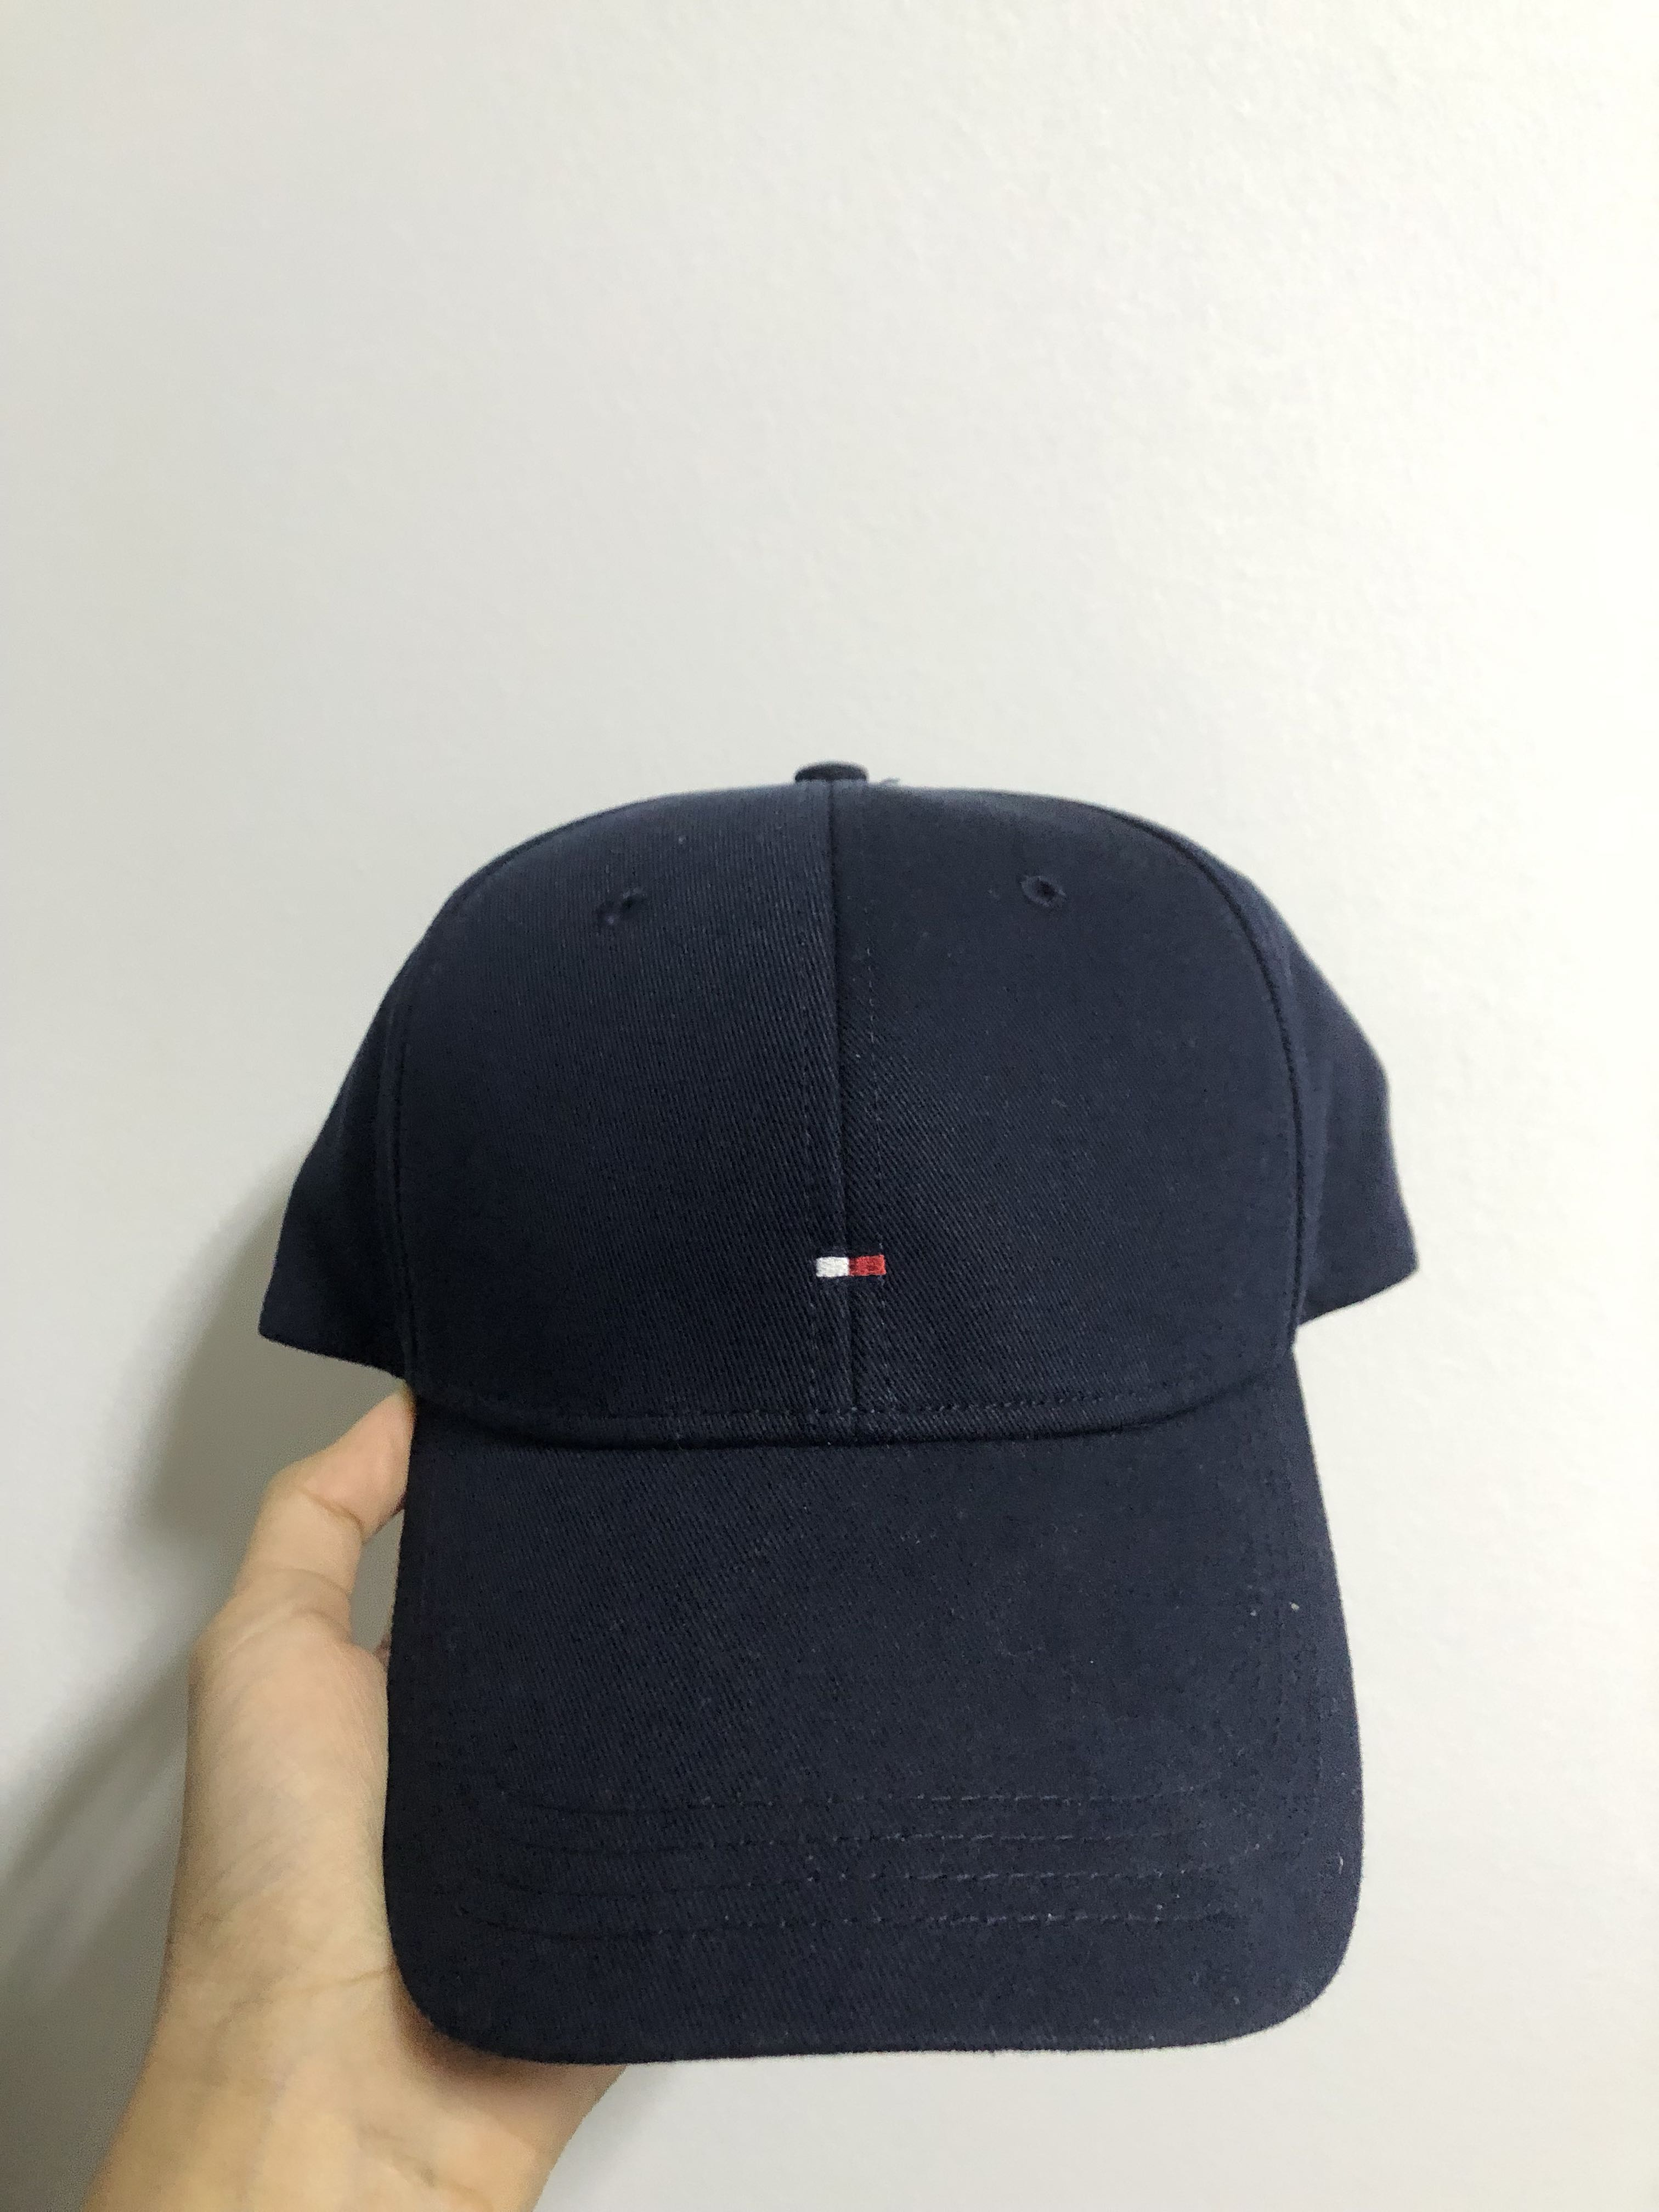 060b5a4a Tommy Hilfiger Classic Cap in Navy, Men's Fashion, Accessories, Caps & Hats  on Carousell